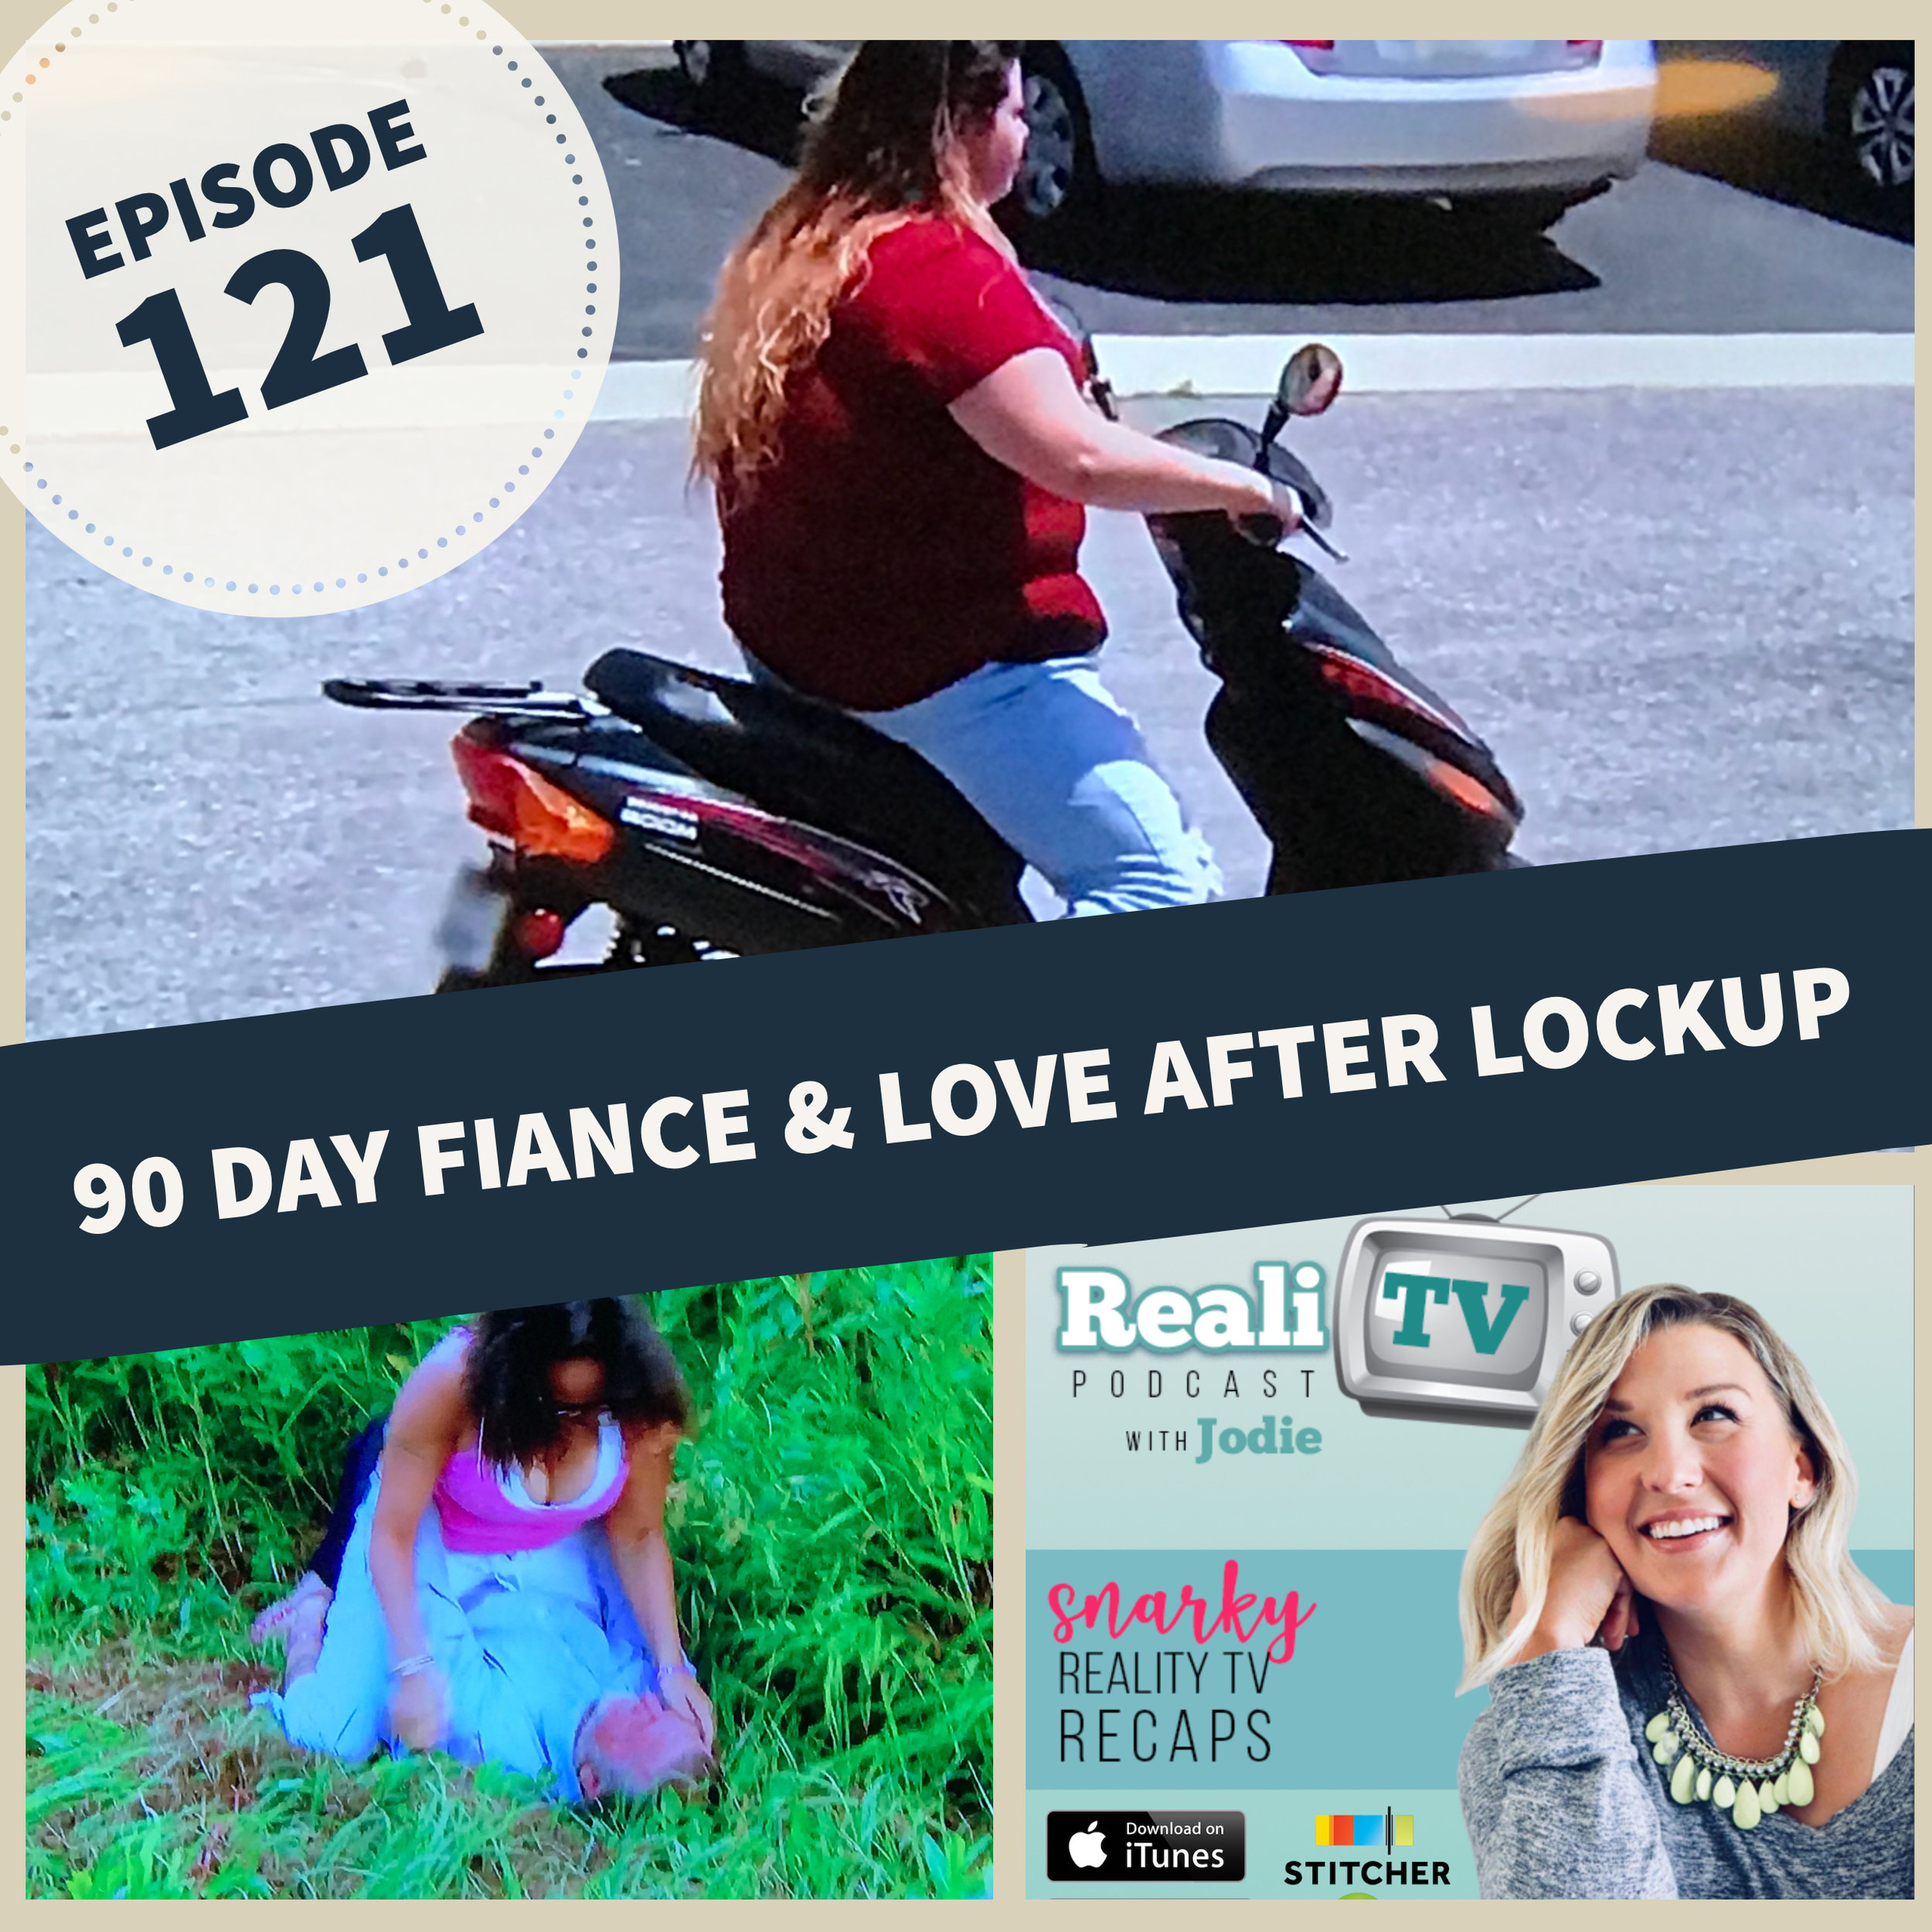 "Episode 121: 90 Day Fiance, 90 Day Live & Love After Lockup 12.20.18 - Are you ready to rage with me this week? In 90 Day Fiance news (0:00), Larissa finds Colt's ""Not for Debbie's Eyes"" videos and turns out Ashley and Jay may have kept a secret from production. Oh, and remember Ricky? Yeah, well he went back online to really seal the deal on what an asshole he is. This week's 90 Day Fiance (4:00) didn't disappoint with Natalie's mode of transportation taking the all-time prize for Best Exit Scene. Beep Beep! With plenty of talk about this season's off-screen drama, 90 Day Live (38:00) with Michelle Collins hosting had me all eyes & ears. Jesse Von Trapp was in his glory, which means he was his typical sociopath self dressed in Edgar Allen Poe's burial suit. Sorry, Mr. Poe. Rounding out the weekend, we also had a new Love After Lockup (43:32). Calling all Wisconsin Residents: we got a BOLO for a missing bridge!SHOP NEW MERCH with Stay Salty Donut logo & Salty Beach starfish for my classy salty bitches ;) www.realitvpod.threadless.comShop www.poshmark.com with referral code REALITV for $5 off your first purchase."